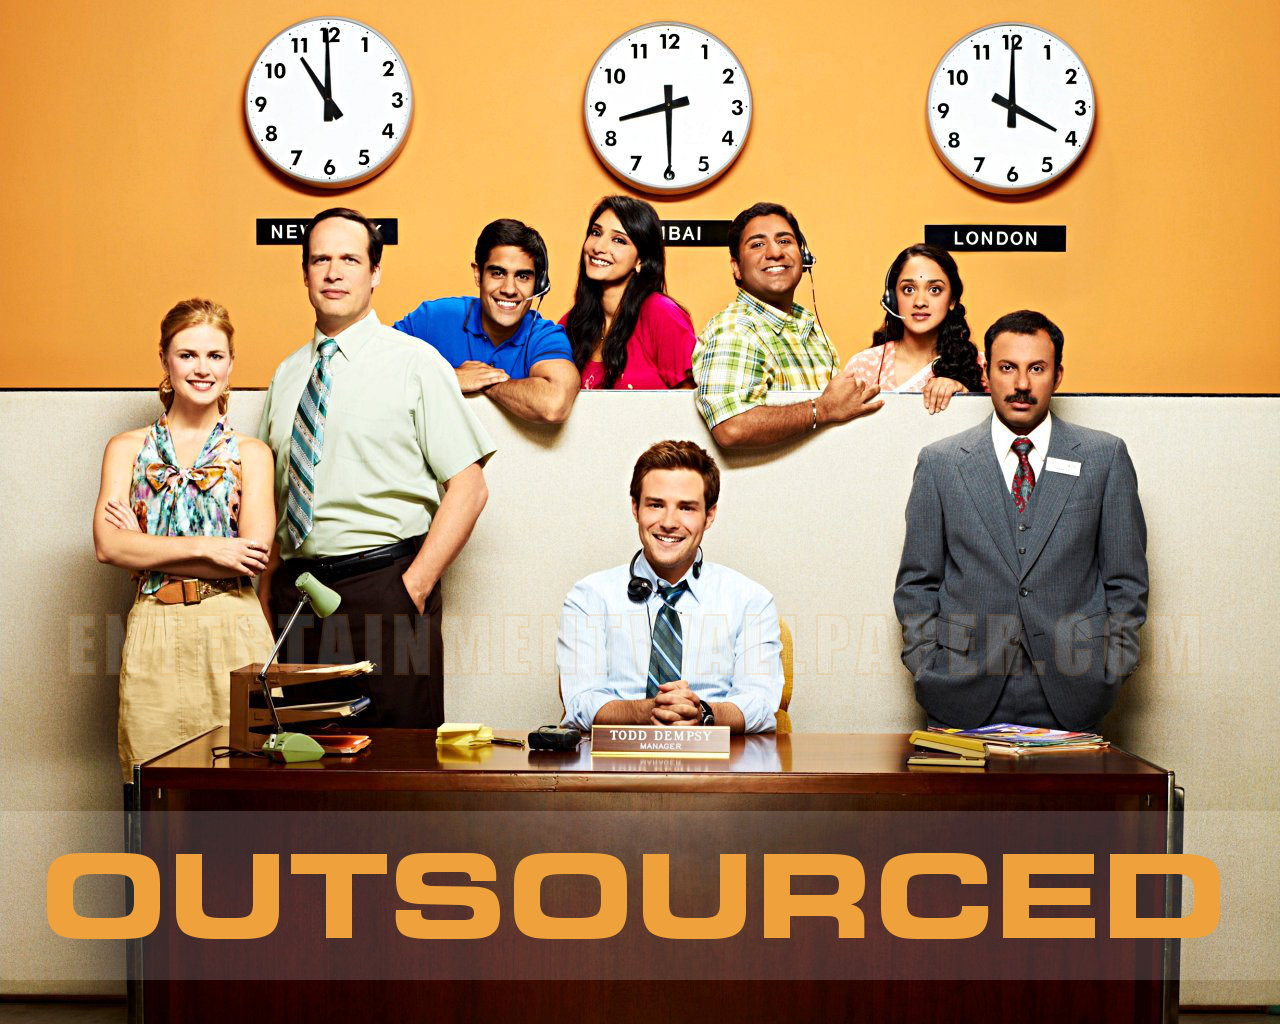 Outsourced Image